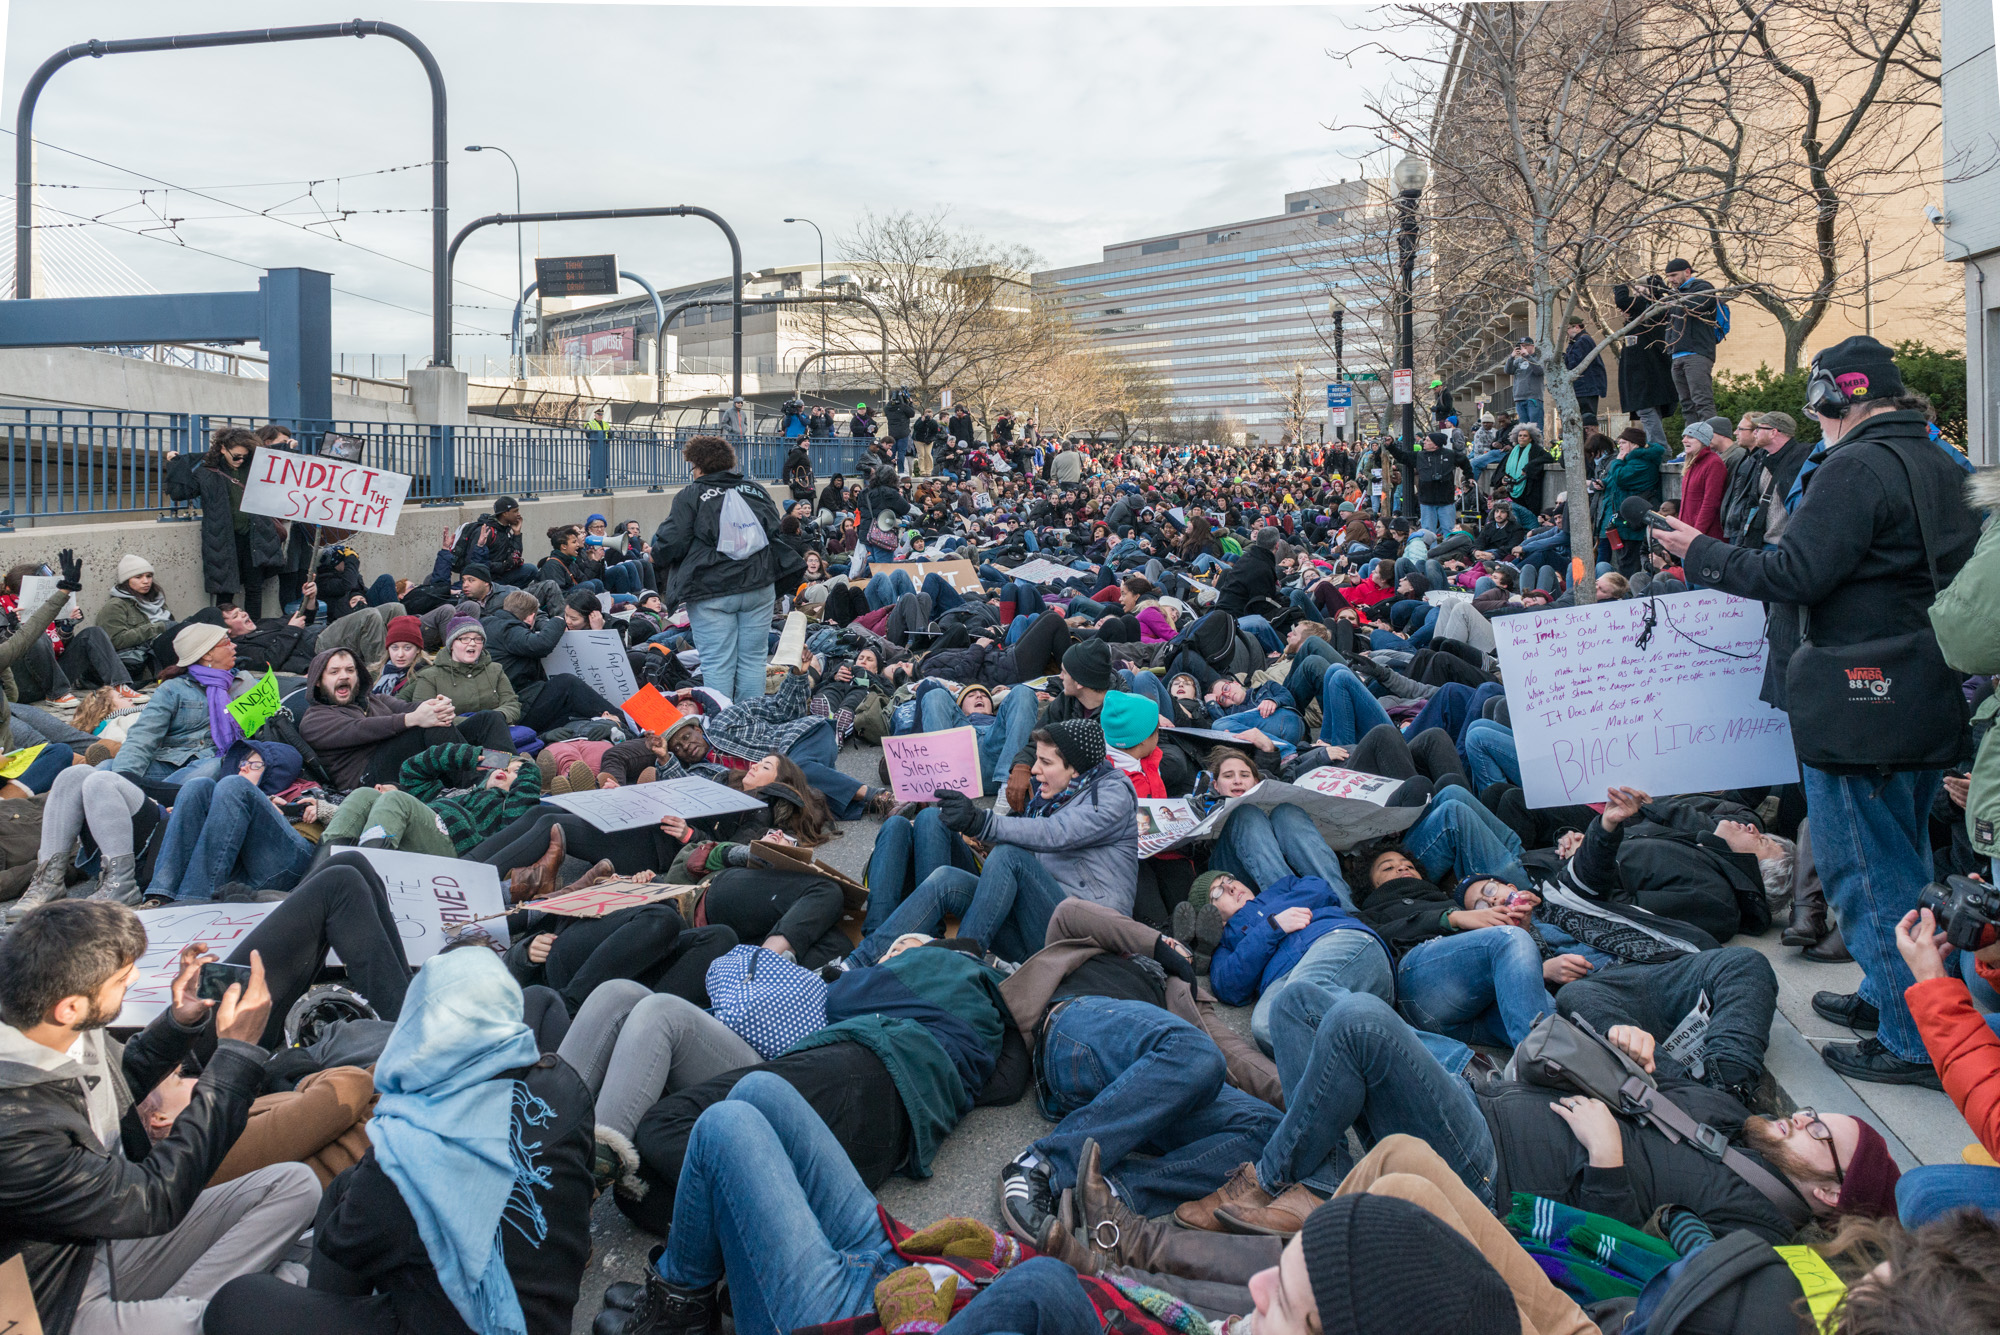 First of several die-ins after the march was stopped by a police barricade